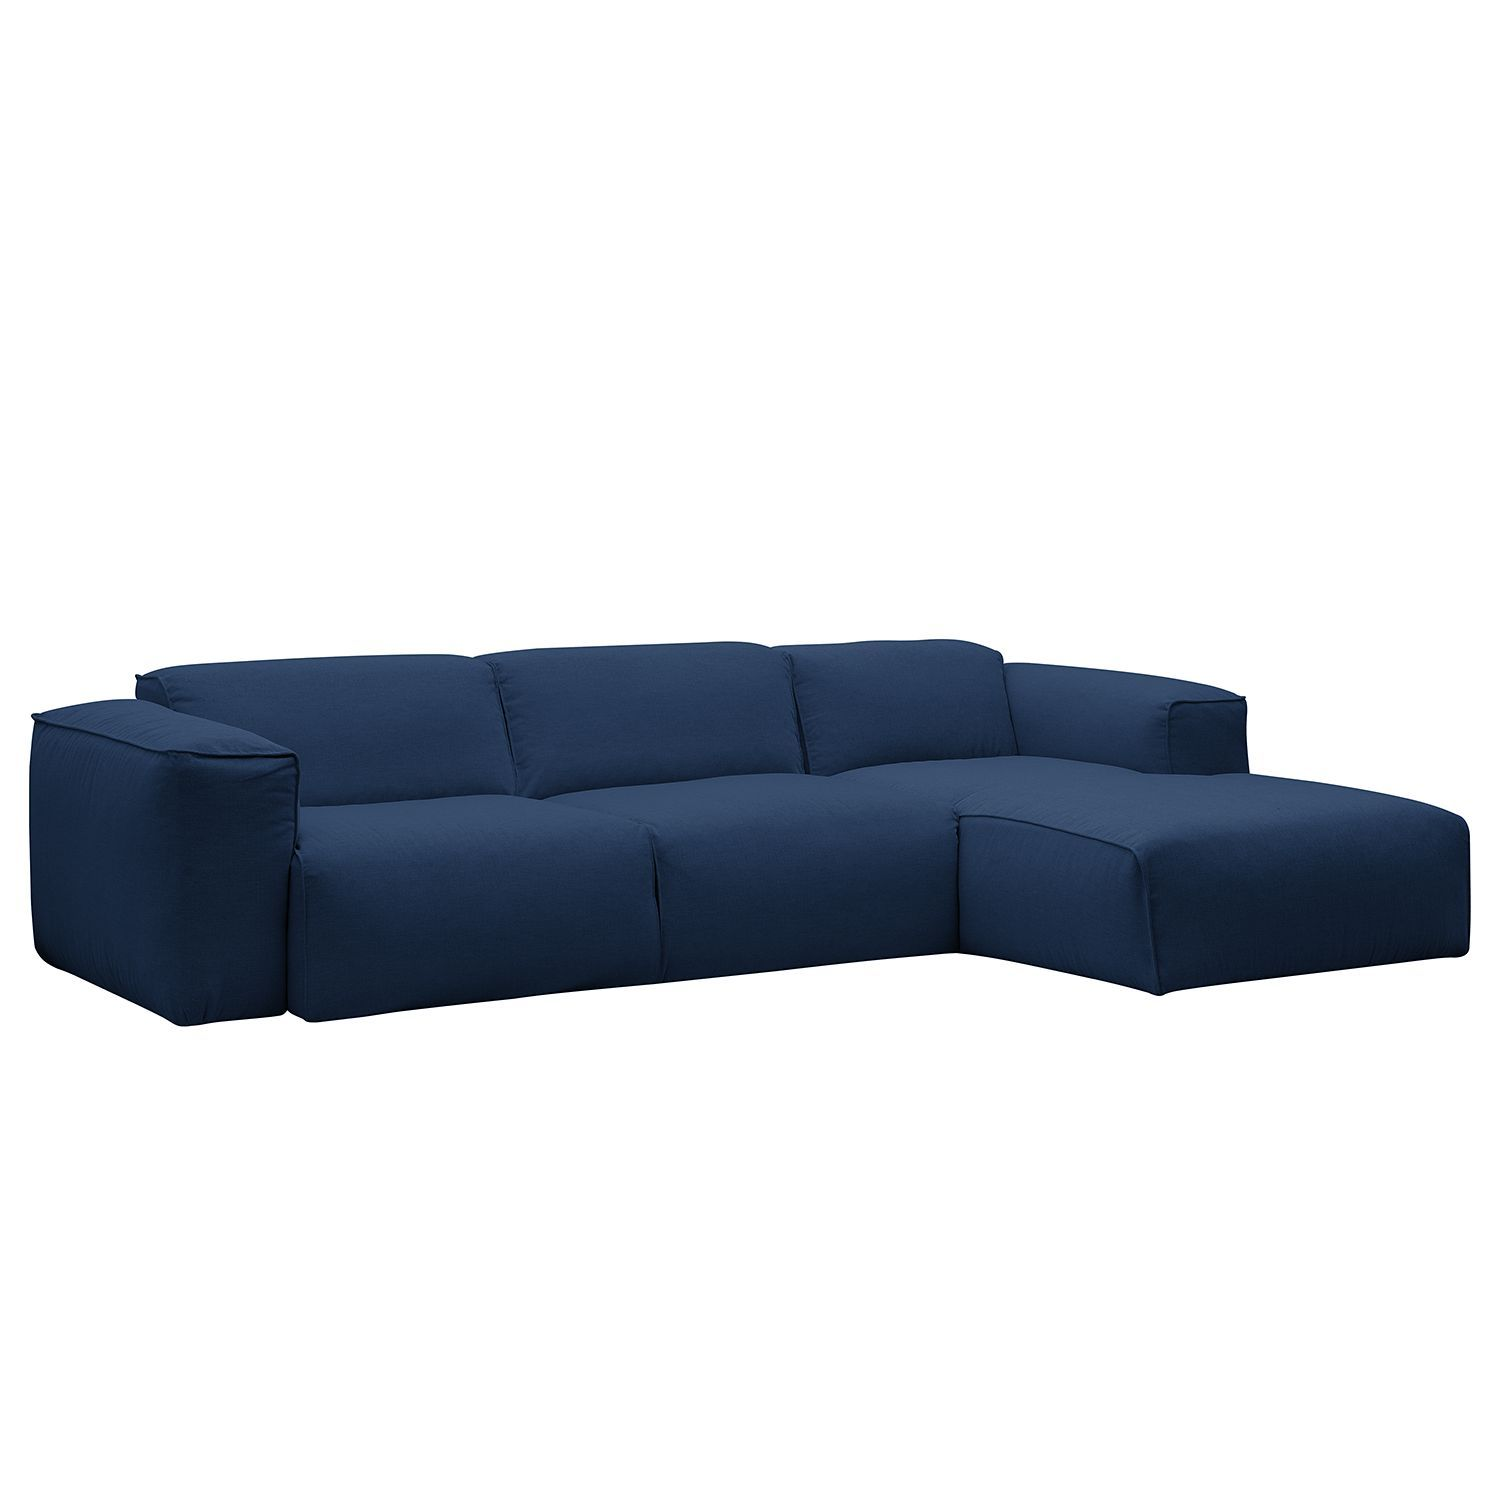 Pin By Ladendirekt On Sofas Couches Sofa Furniture Sofa Couch